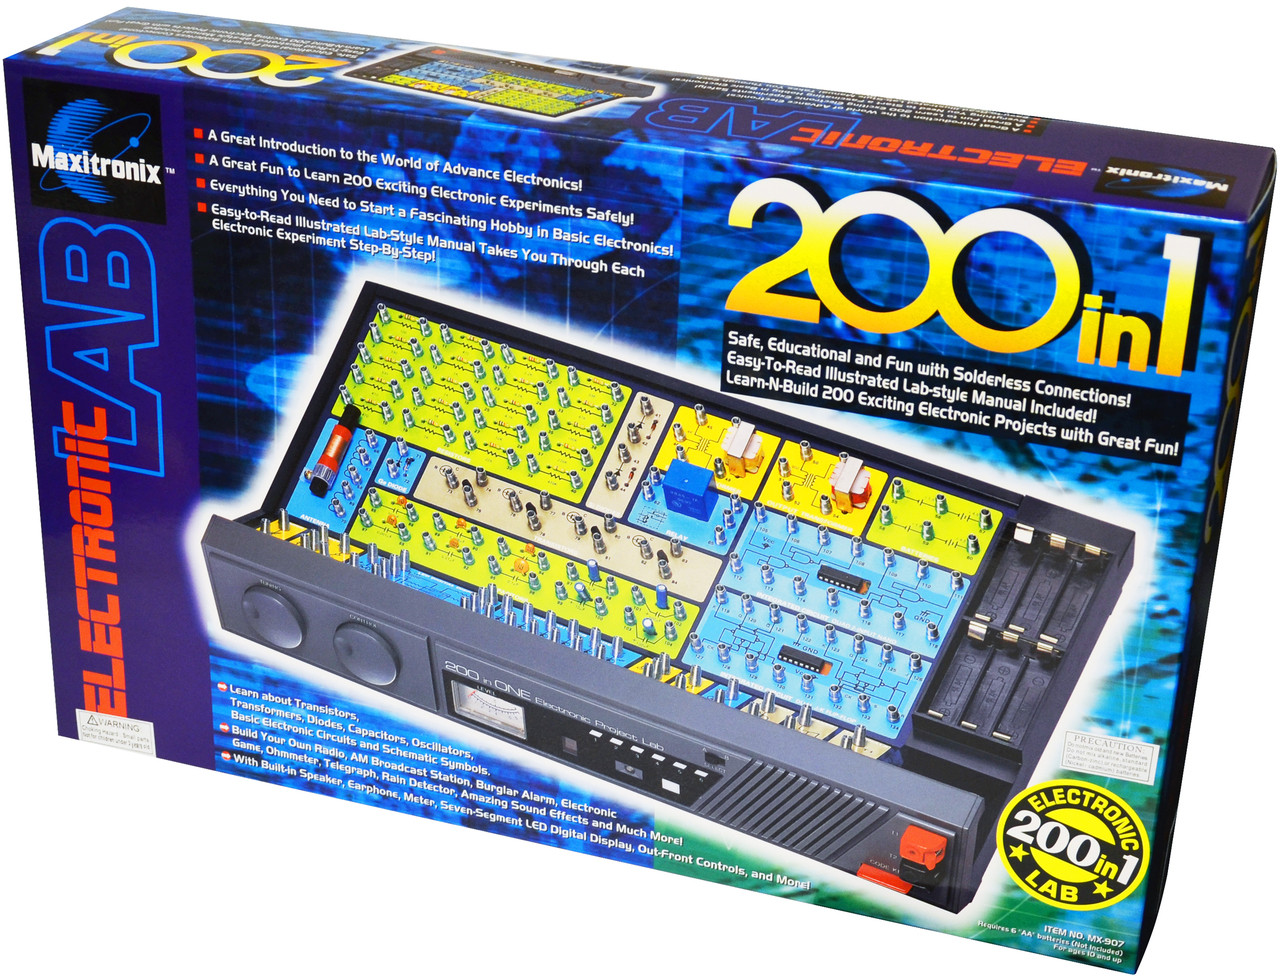 200-in-1 Electronic Project Lab